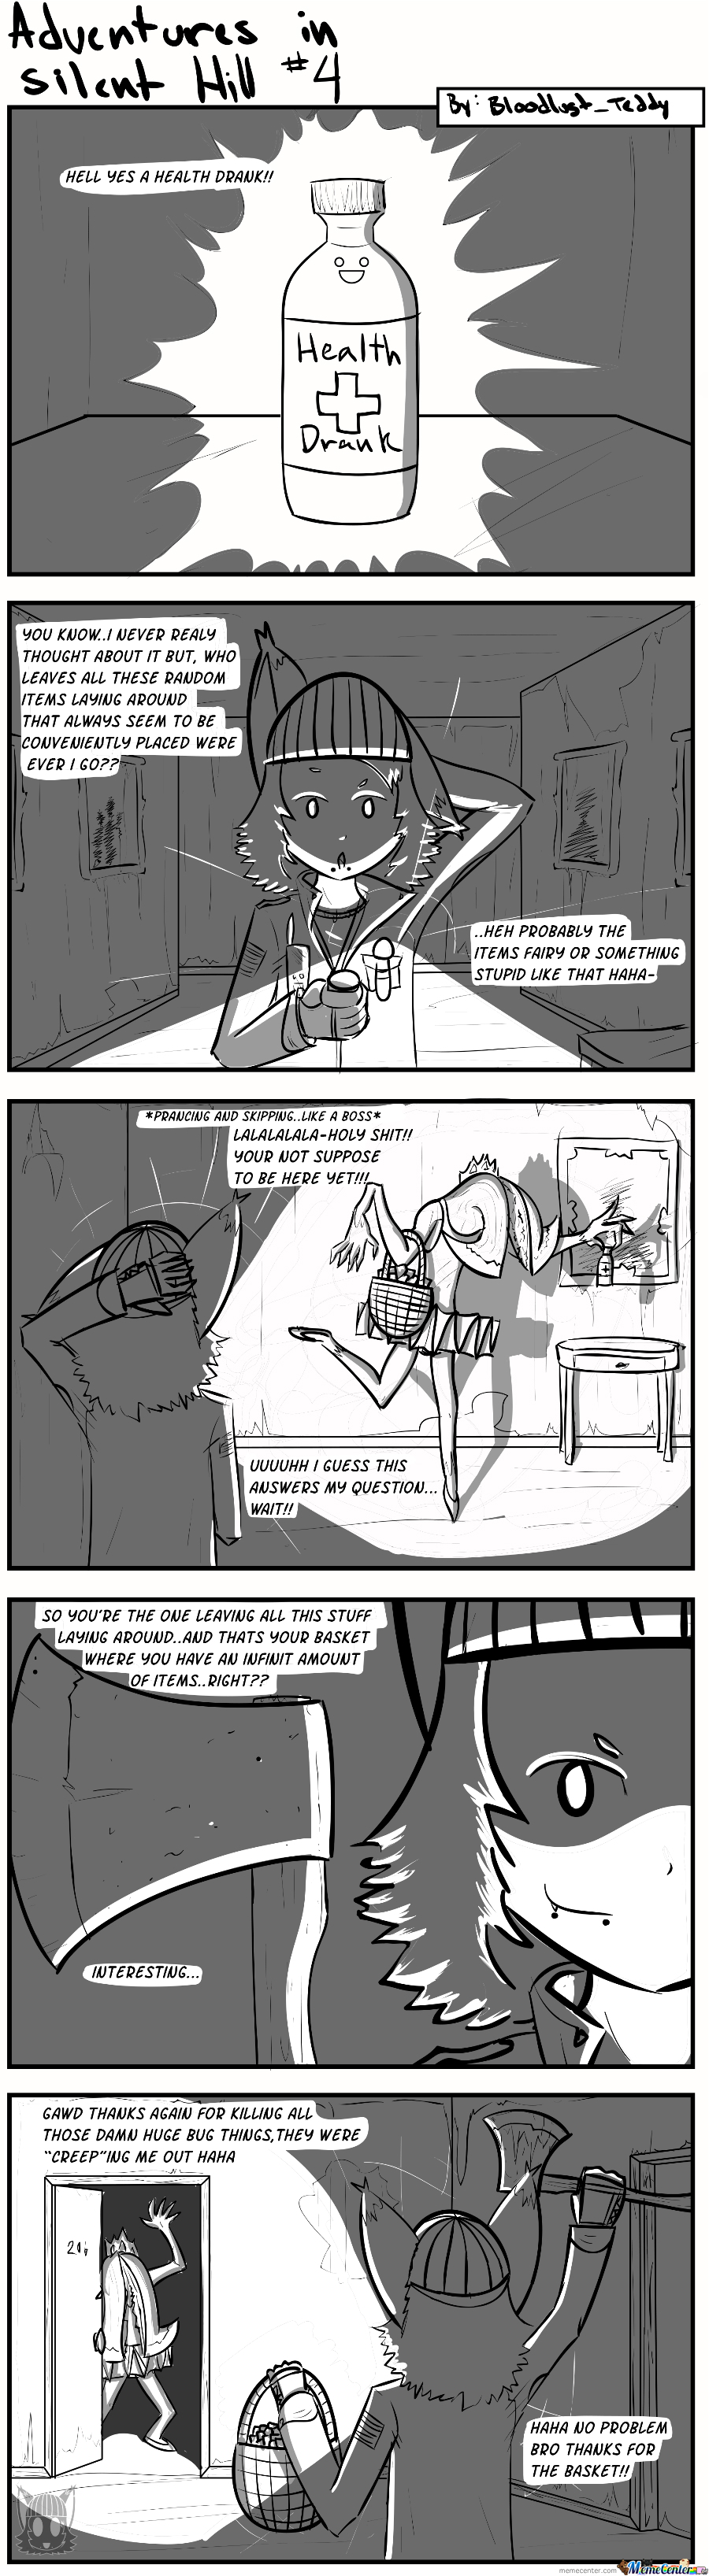 Adventures In Silent Hill #4